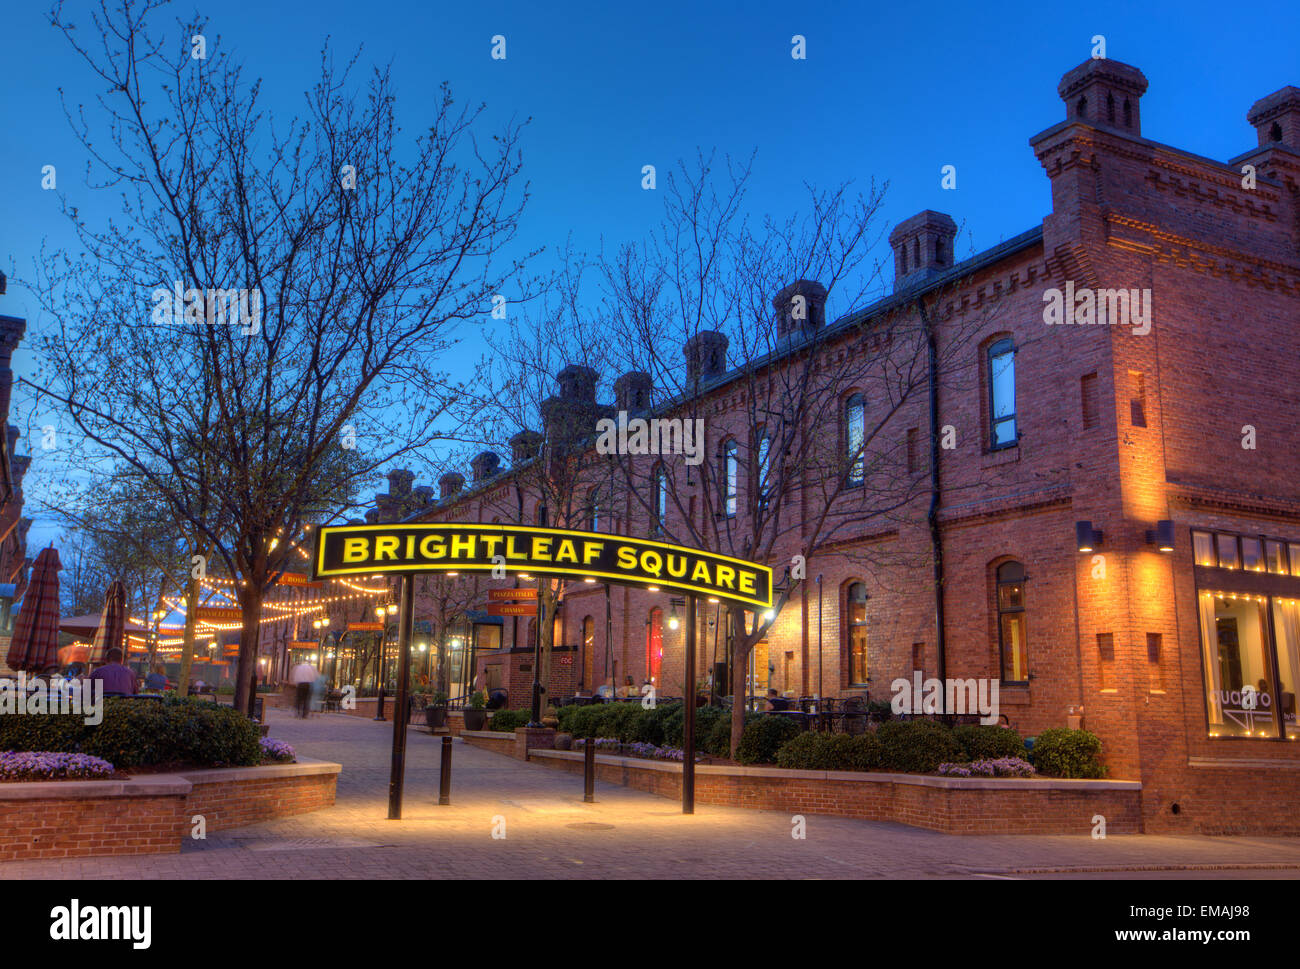 Brightleaf Square, former tobacco warehouses turned into retail businesses, Durham, North Carolina. - Stock Image